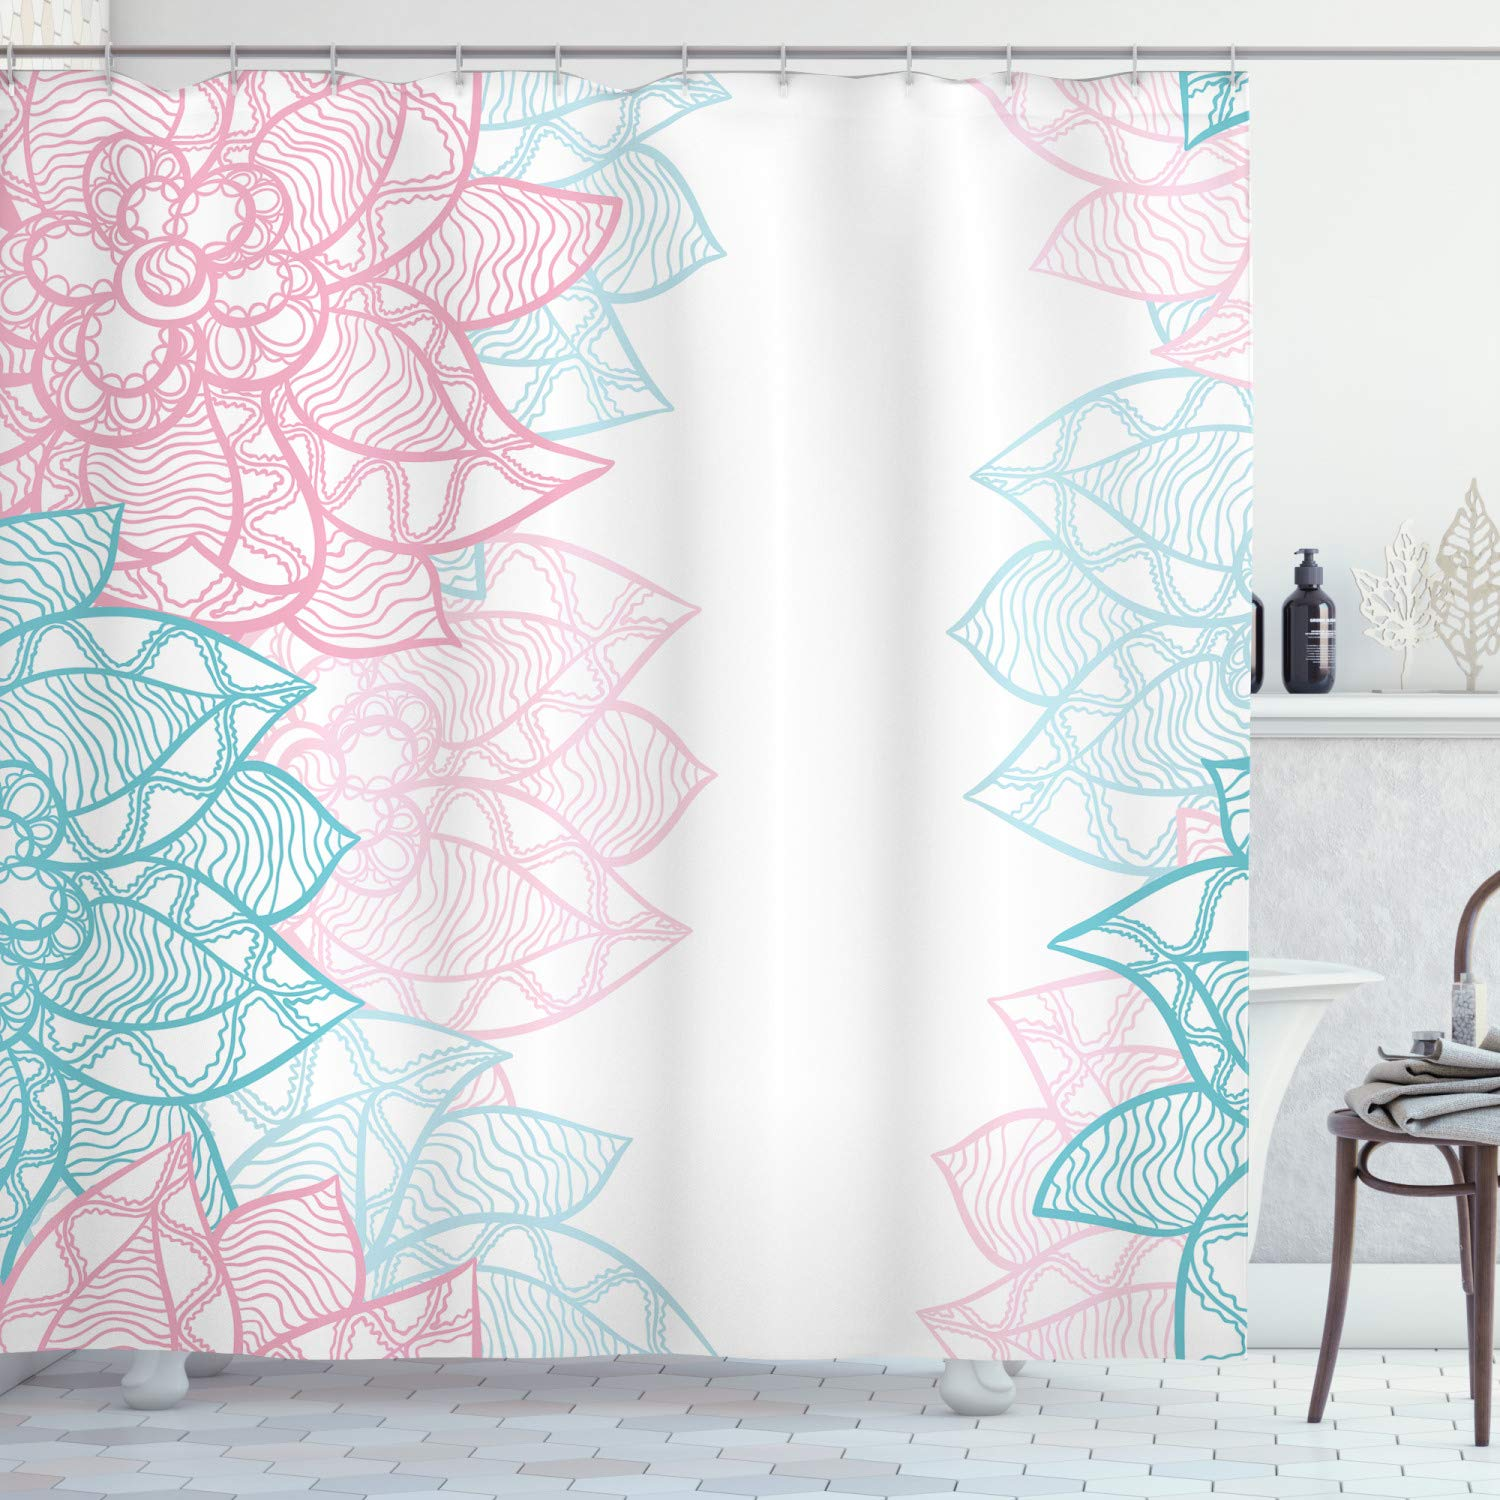 Ambesonne Floral Shower Curtain by, Large Flower Petal in Pastel Tone Elegance Spring Beauty Embellished Design, Fabric Bathroom Decor Set with Hooks, 70 Inches, Sky Blue Light Pink